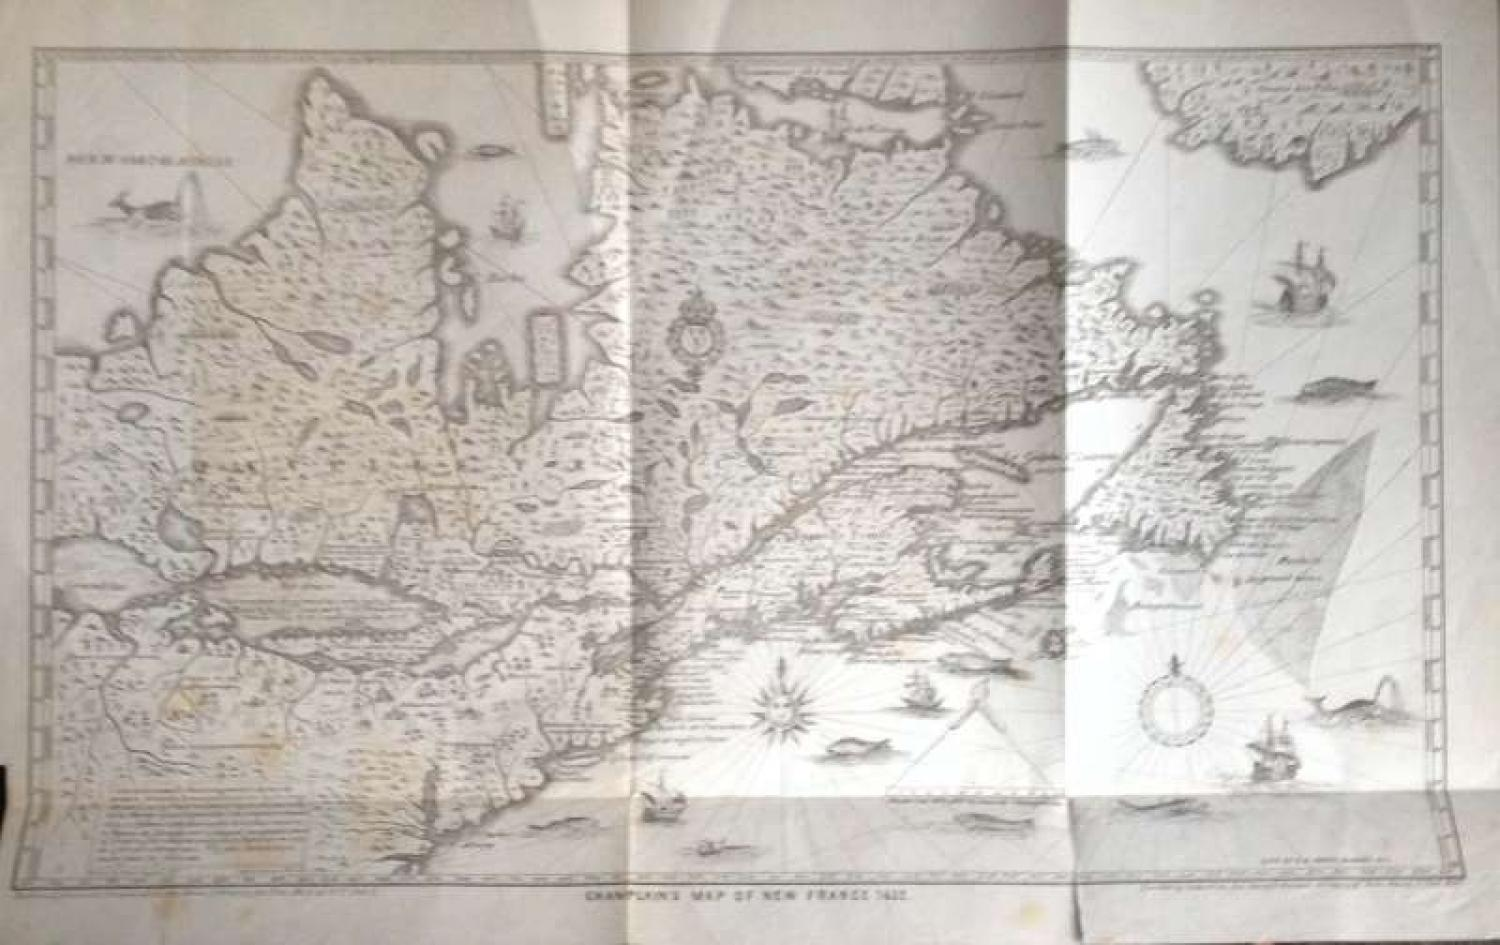 SOLD Champlain's Map of New France